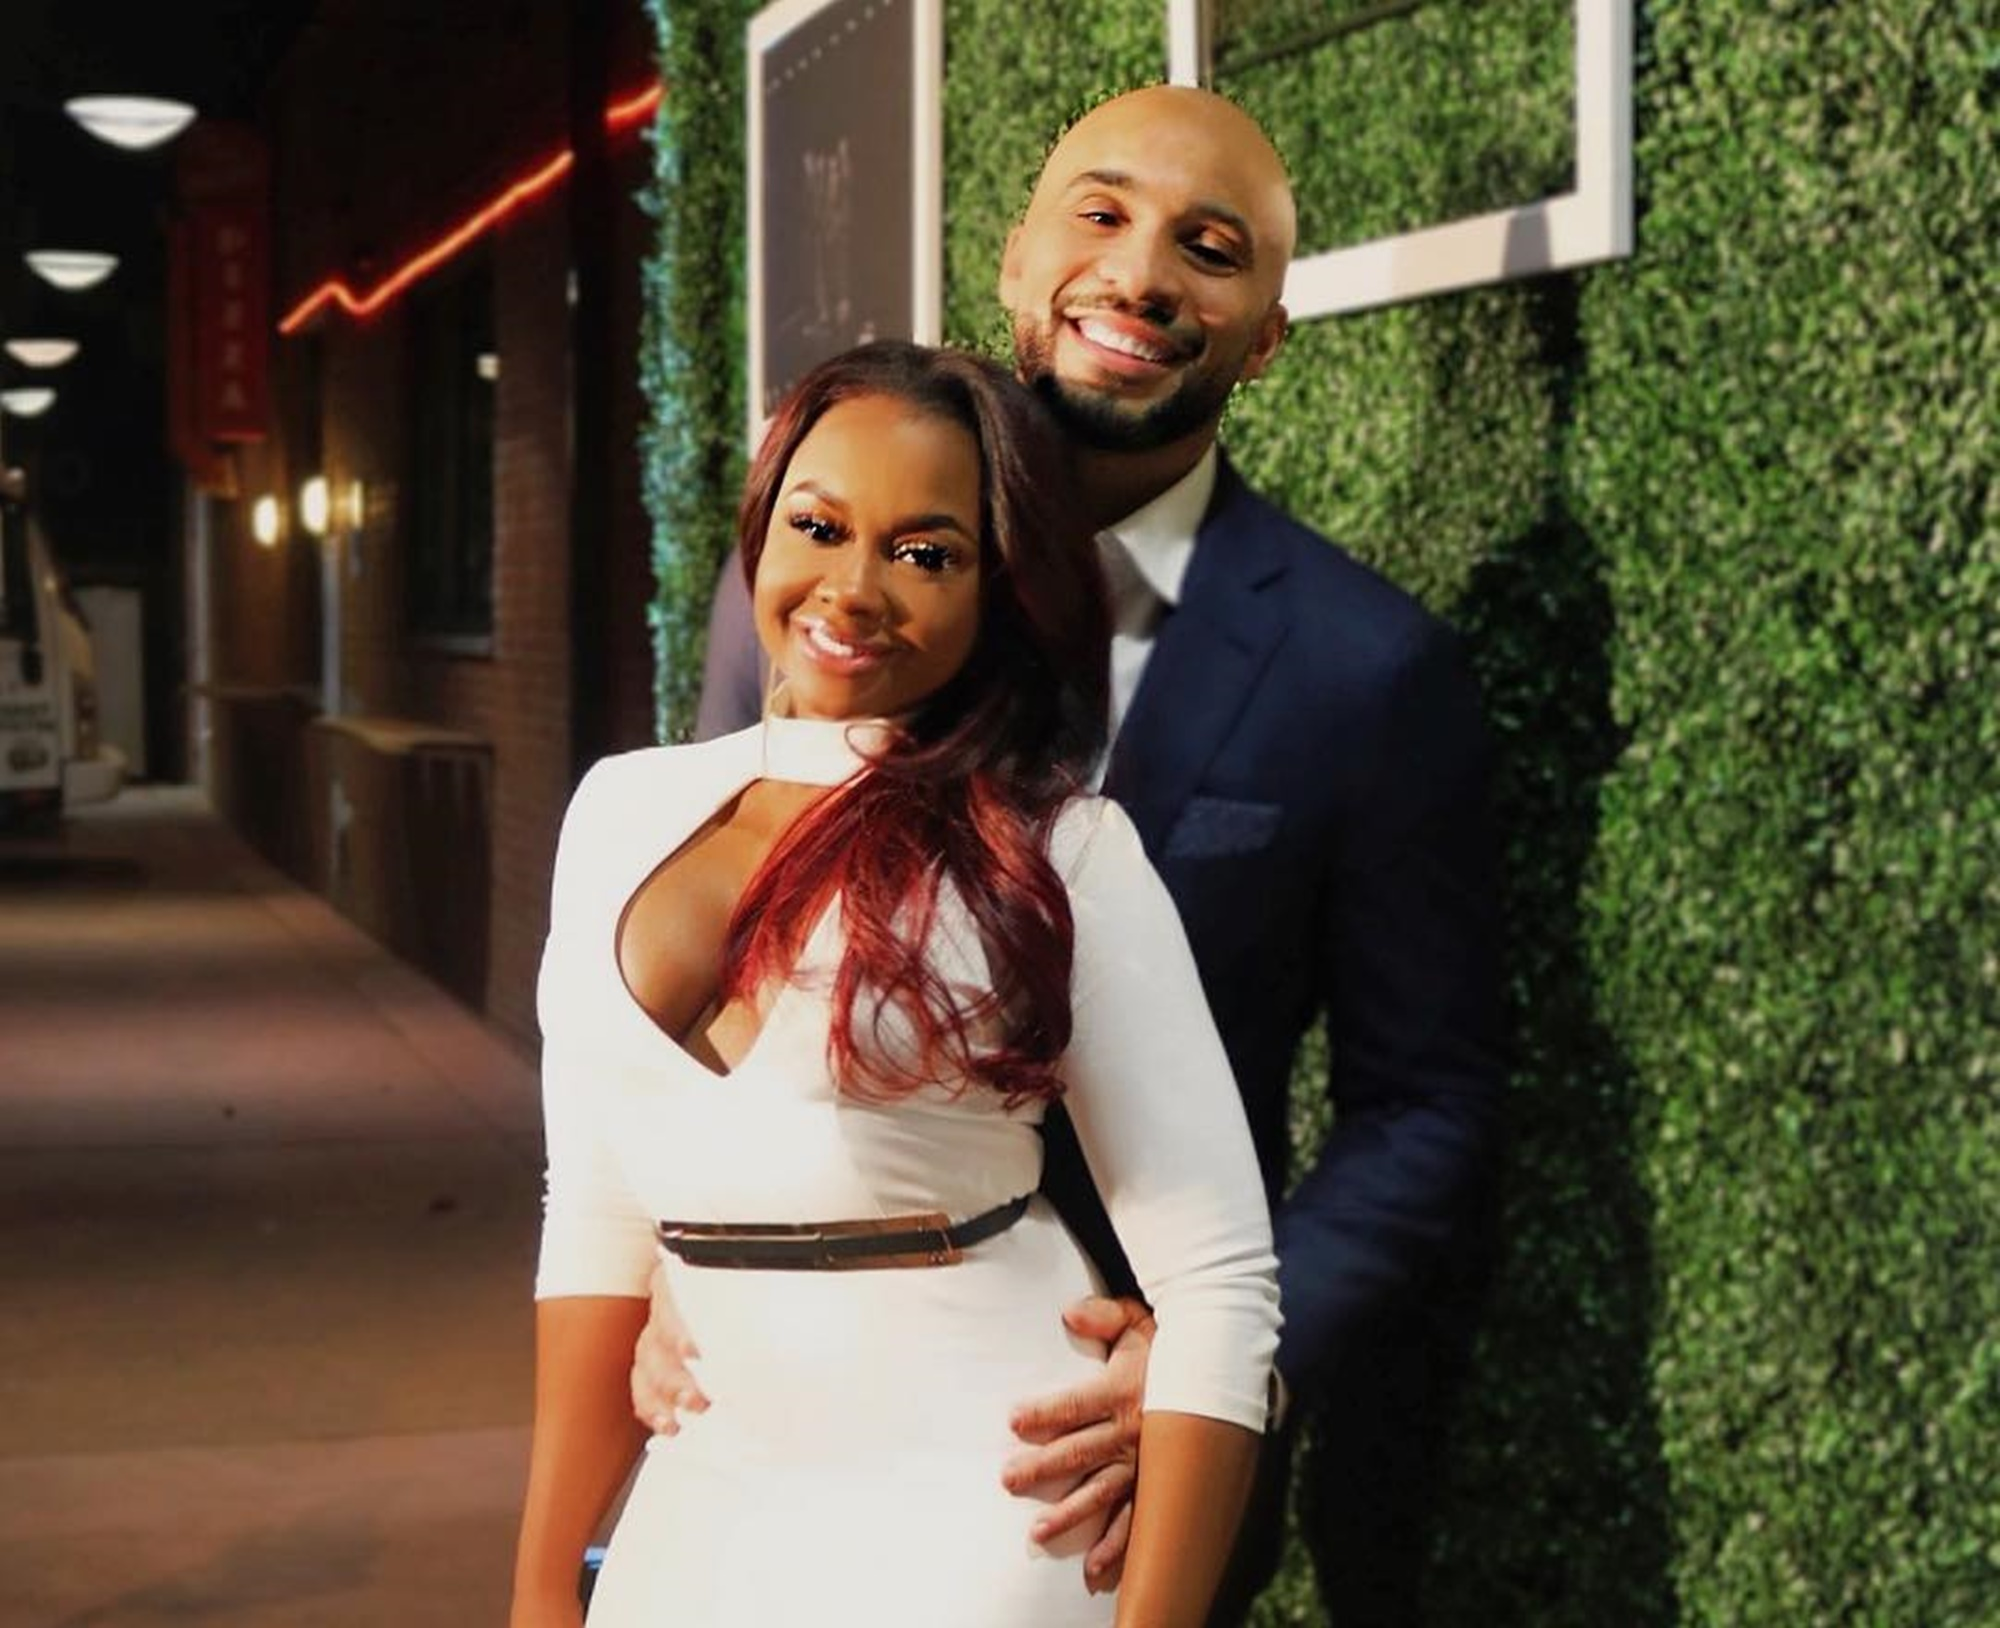 phaedra-parks-fans-are-laughing-at-her-boyfriend-tone-kapone-after-he-posted-this-valentines-day-message